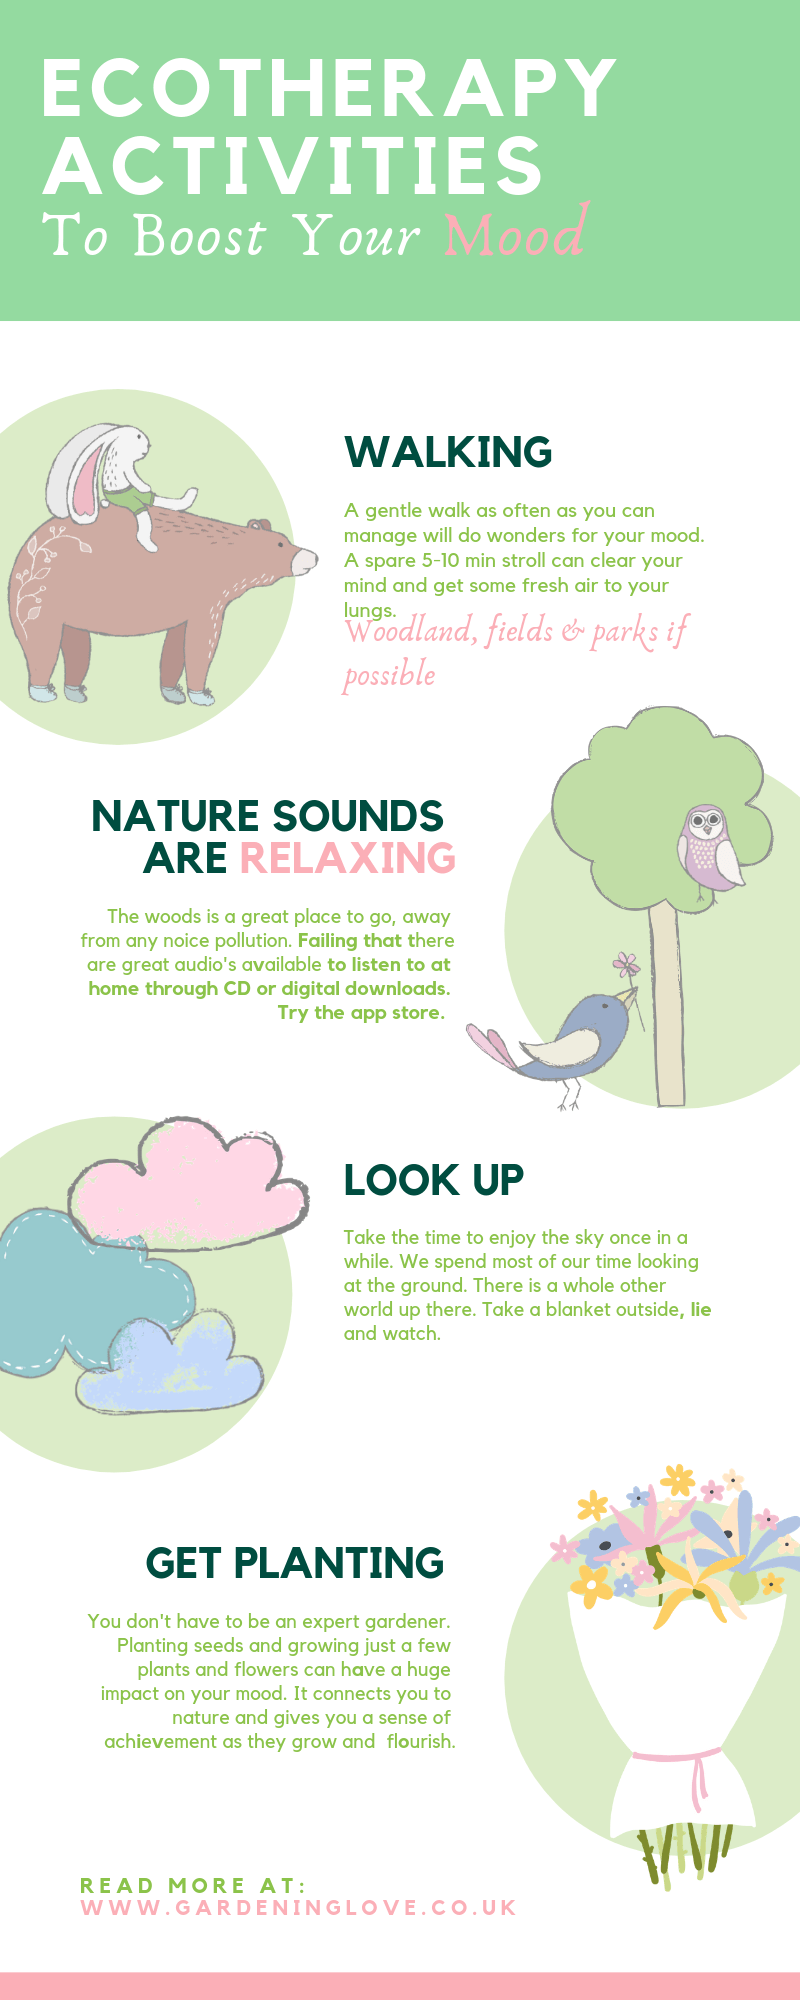 ecotherapy activities to boost your mood